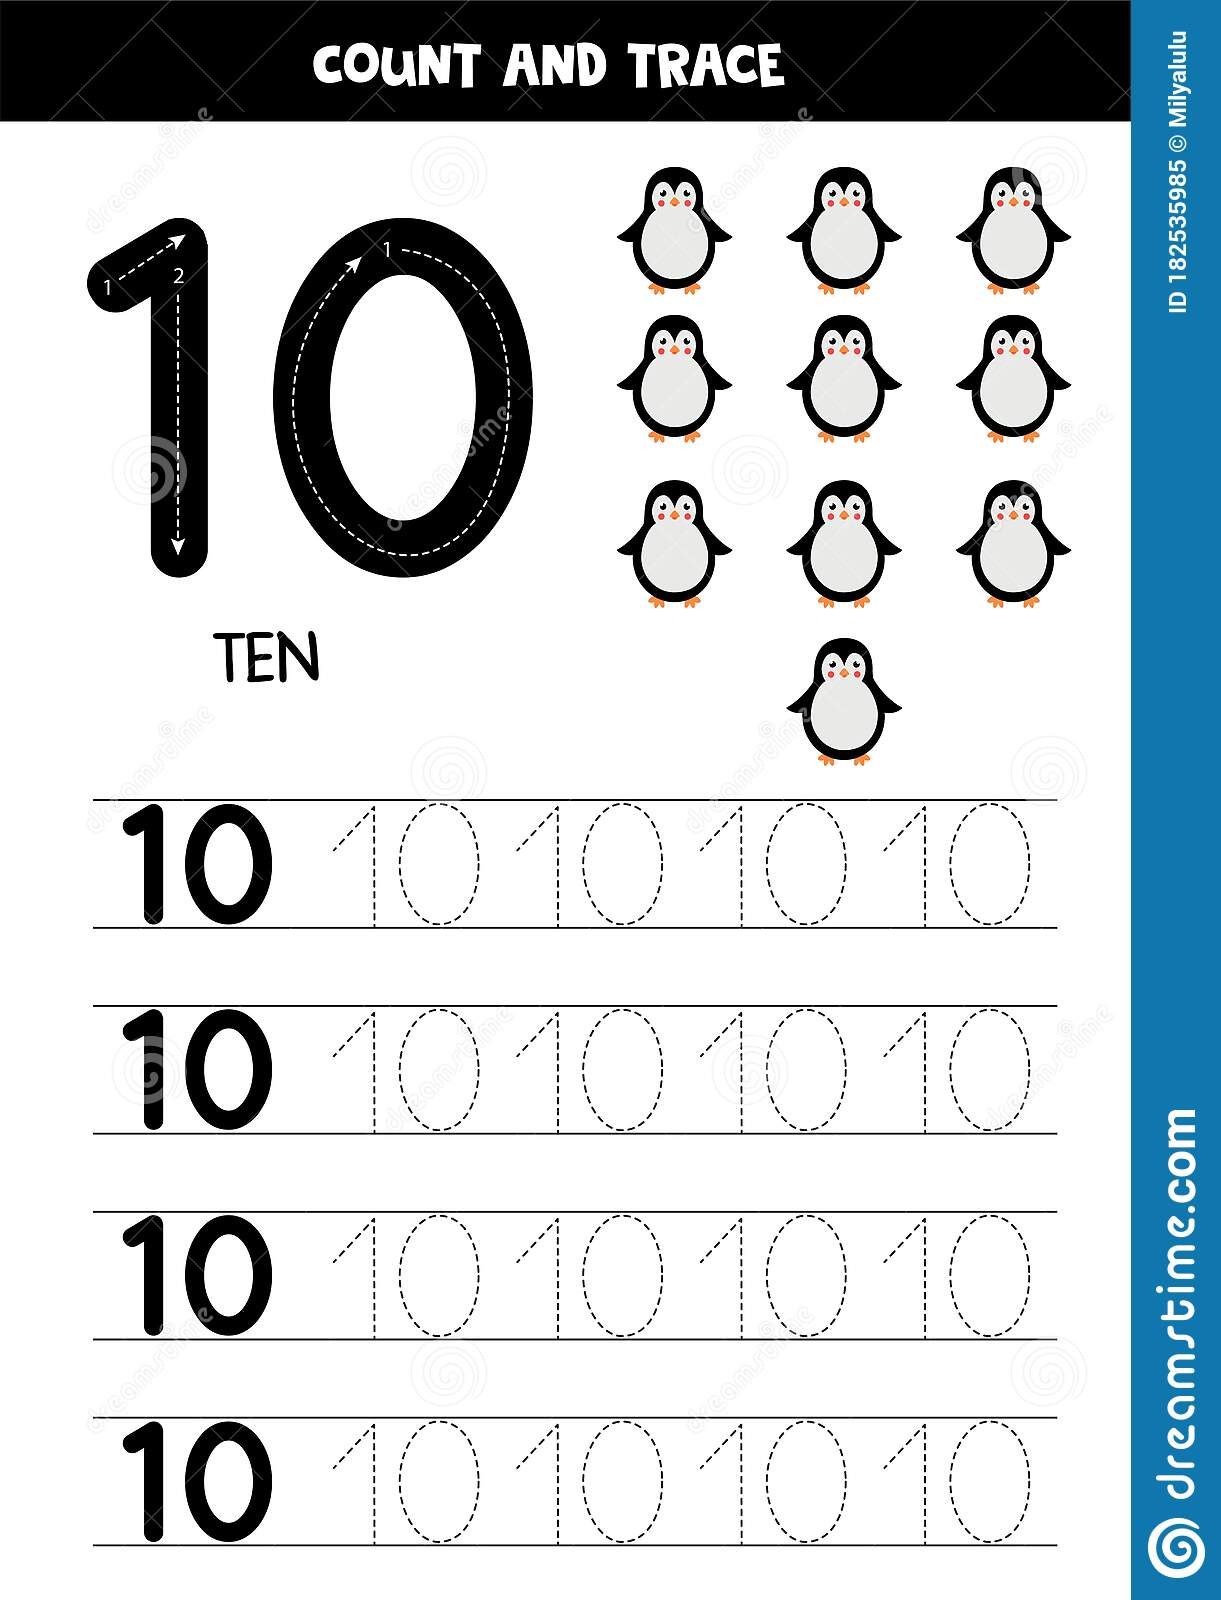 Worksheet For Kids Seven Cute Cartoon Penguins Tracing